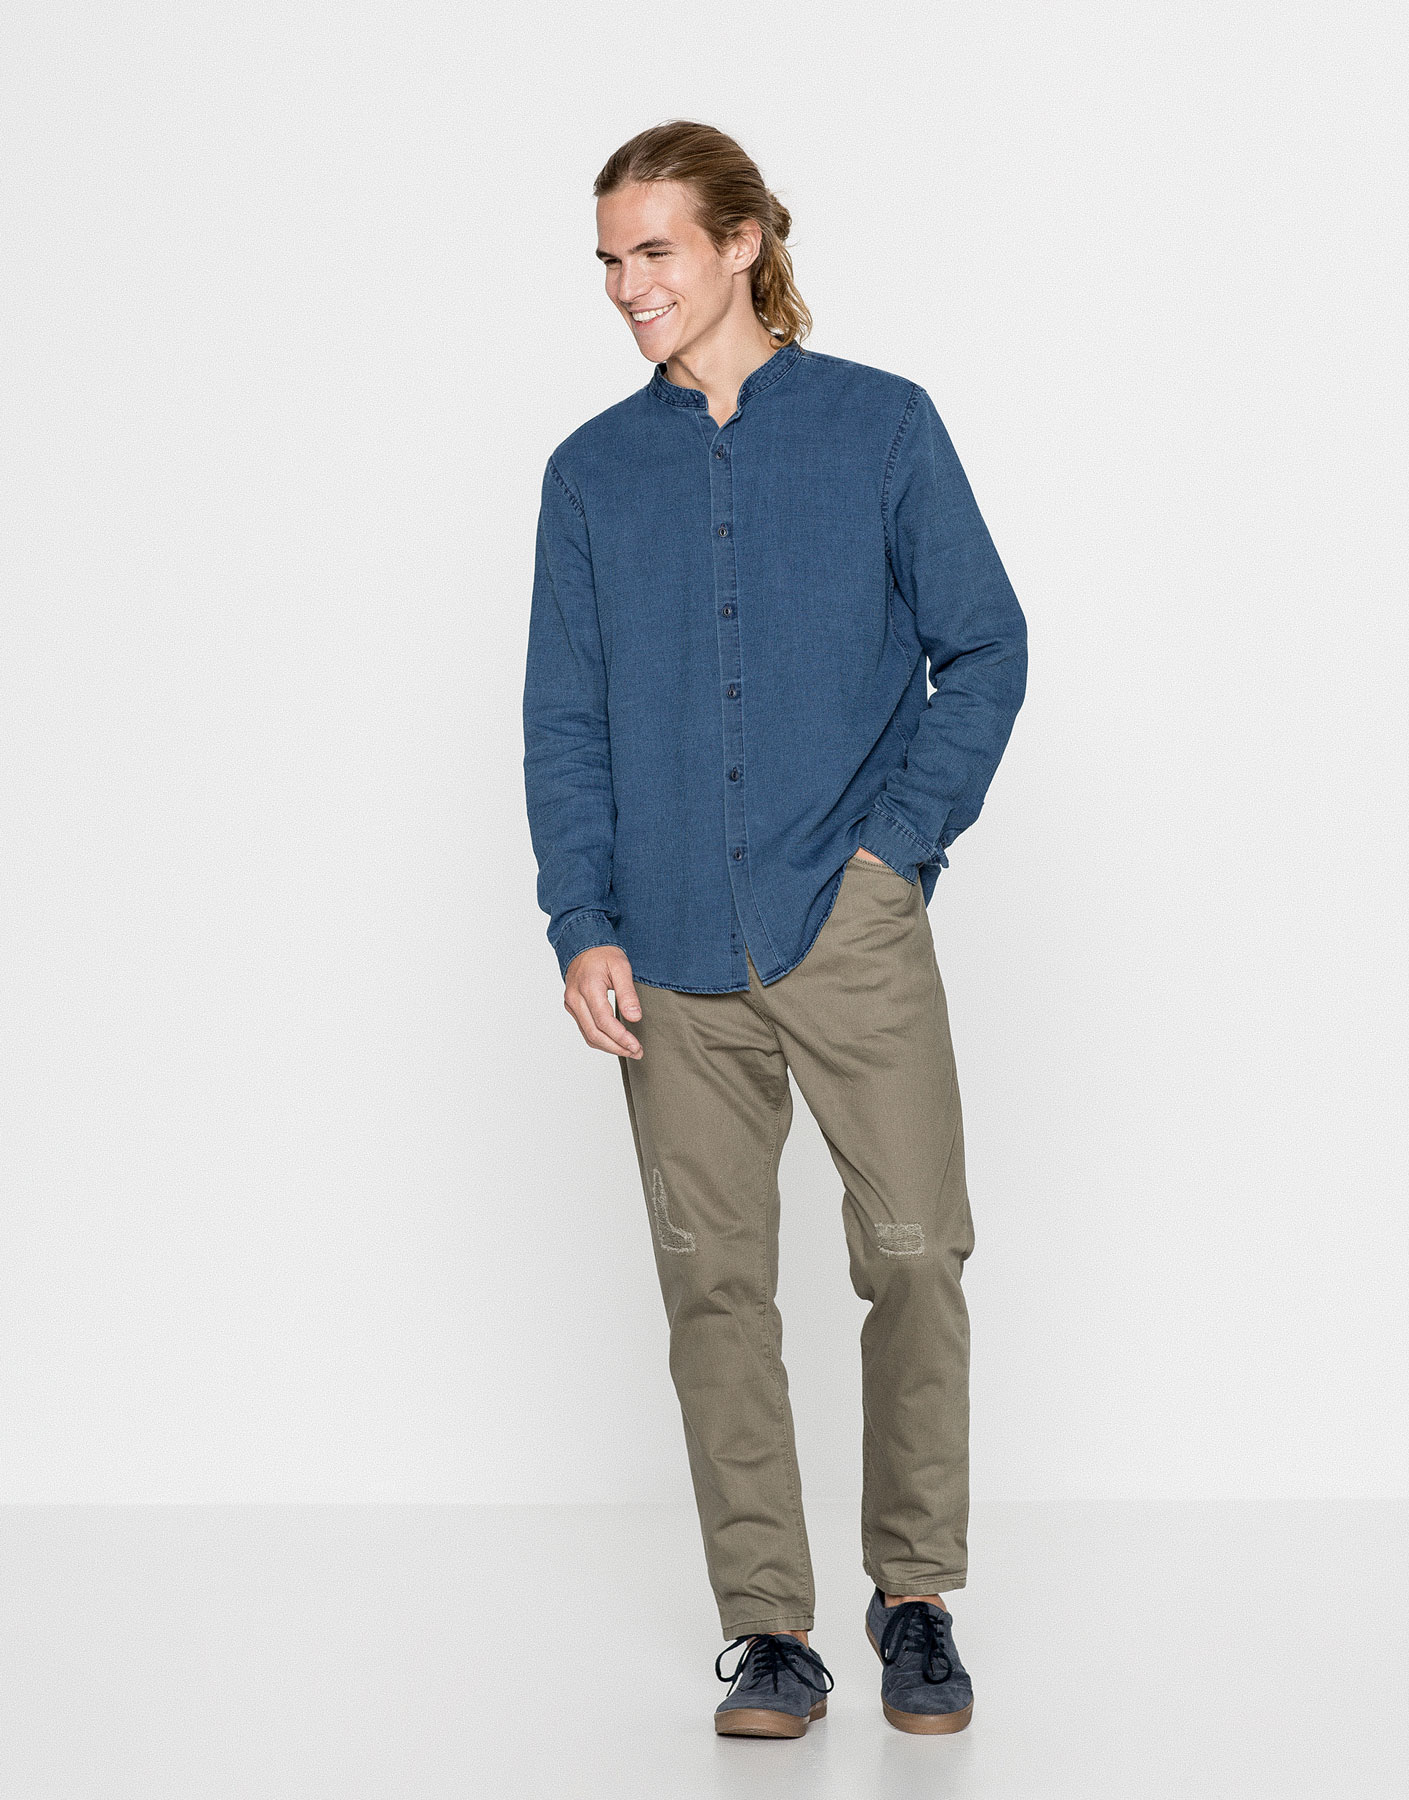 Indigo mandarin collar denim shirt